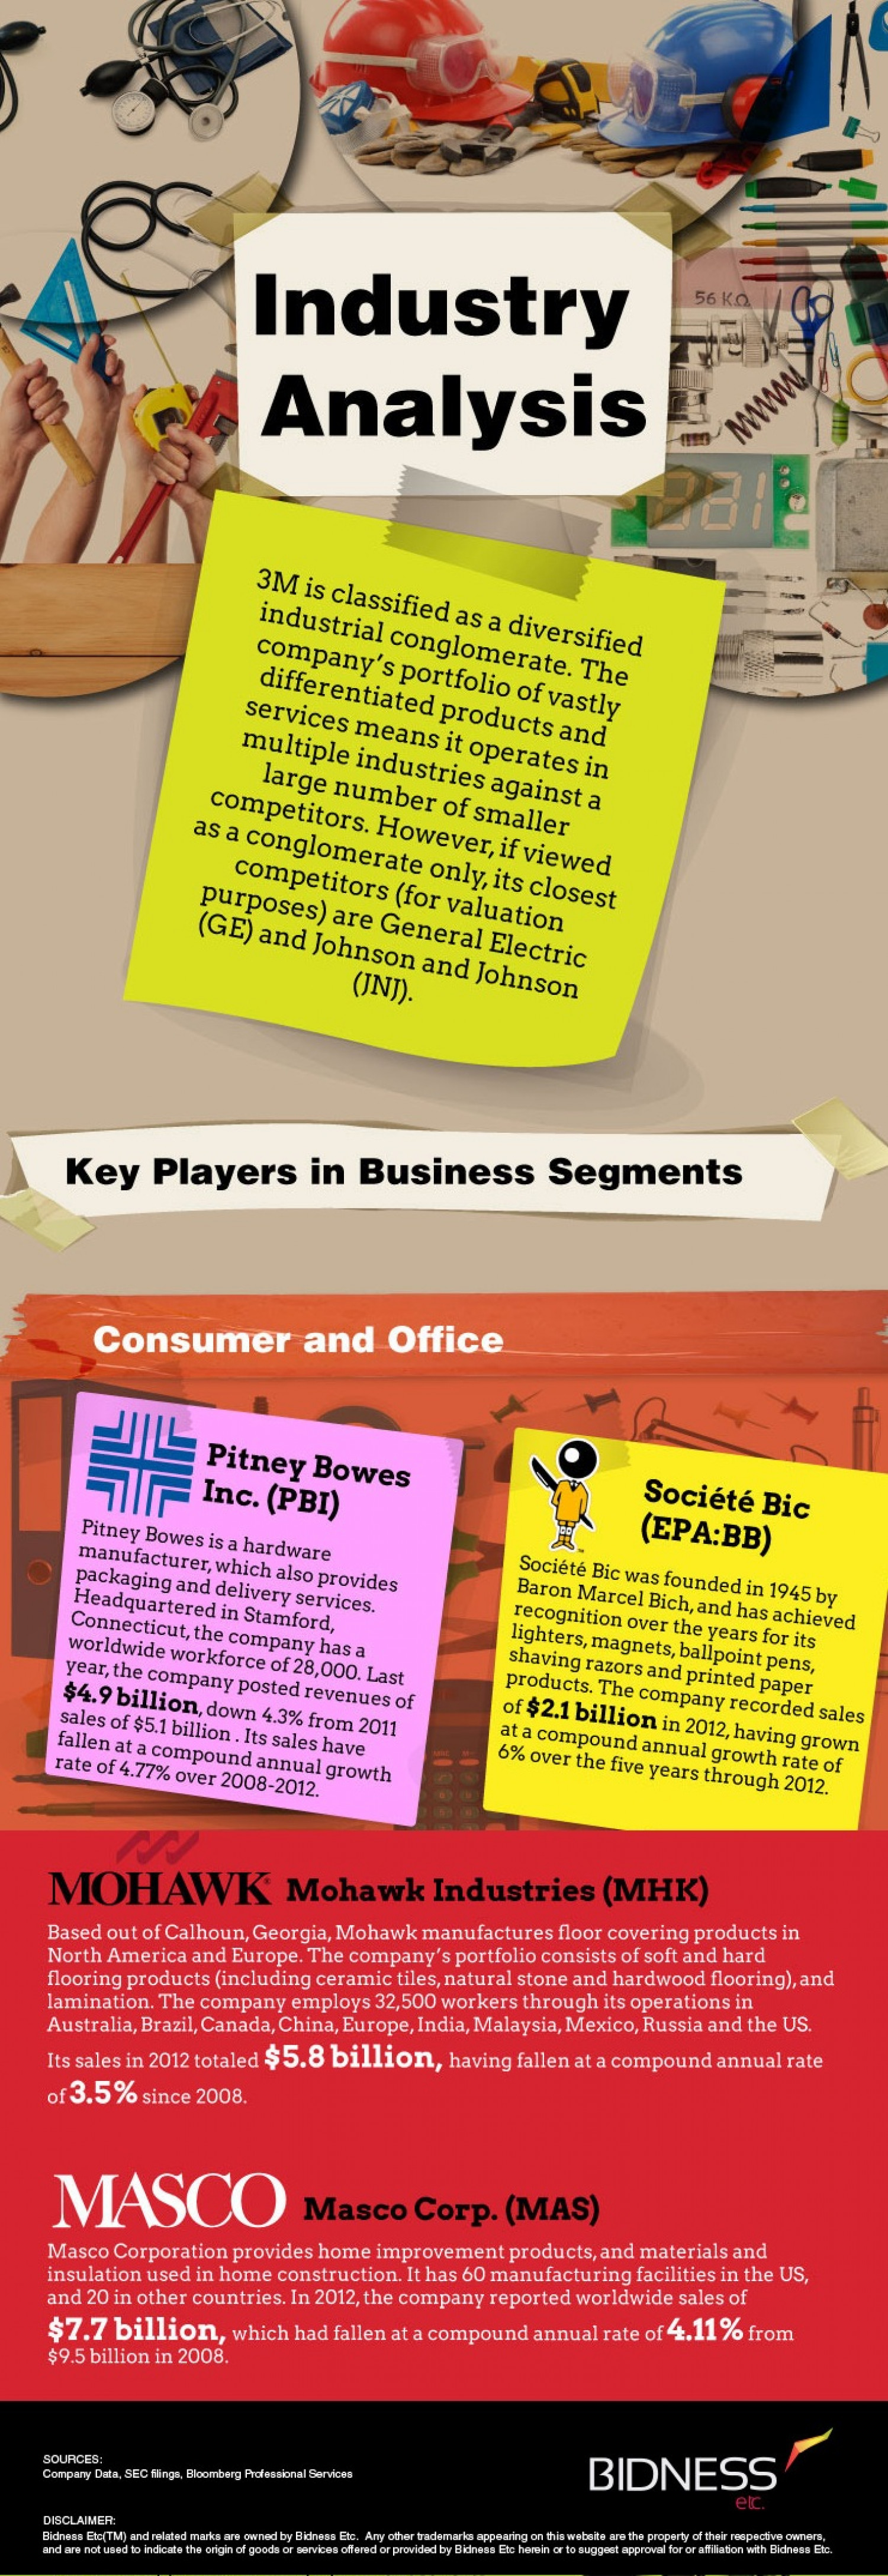 3M (MMM) Industry Analysis Infographic